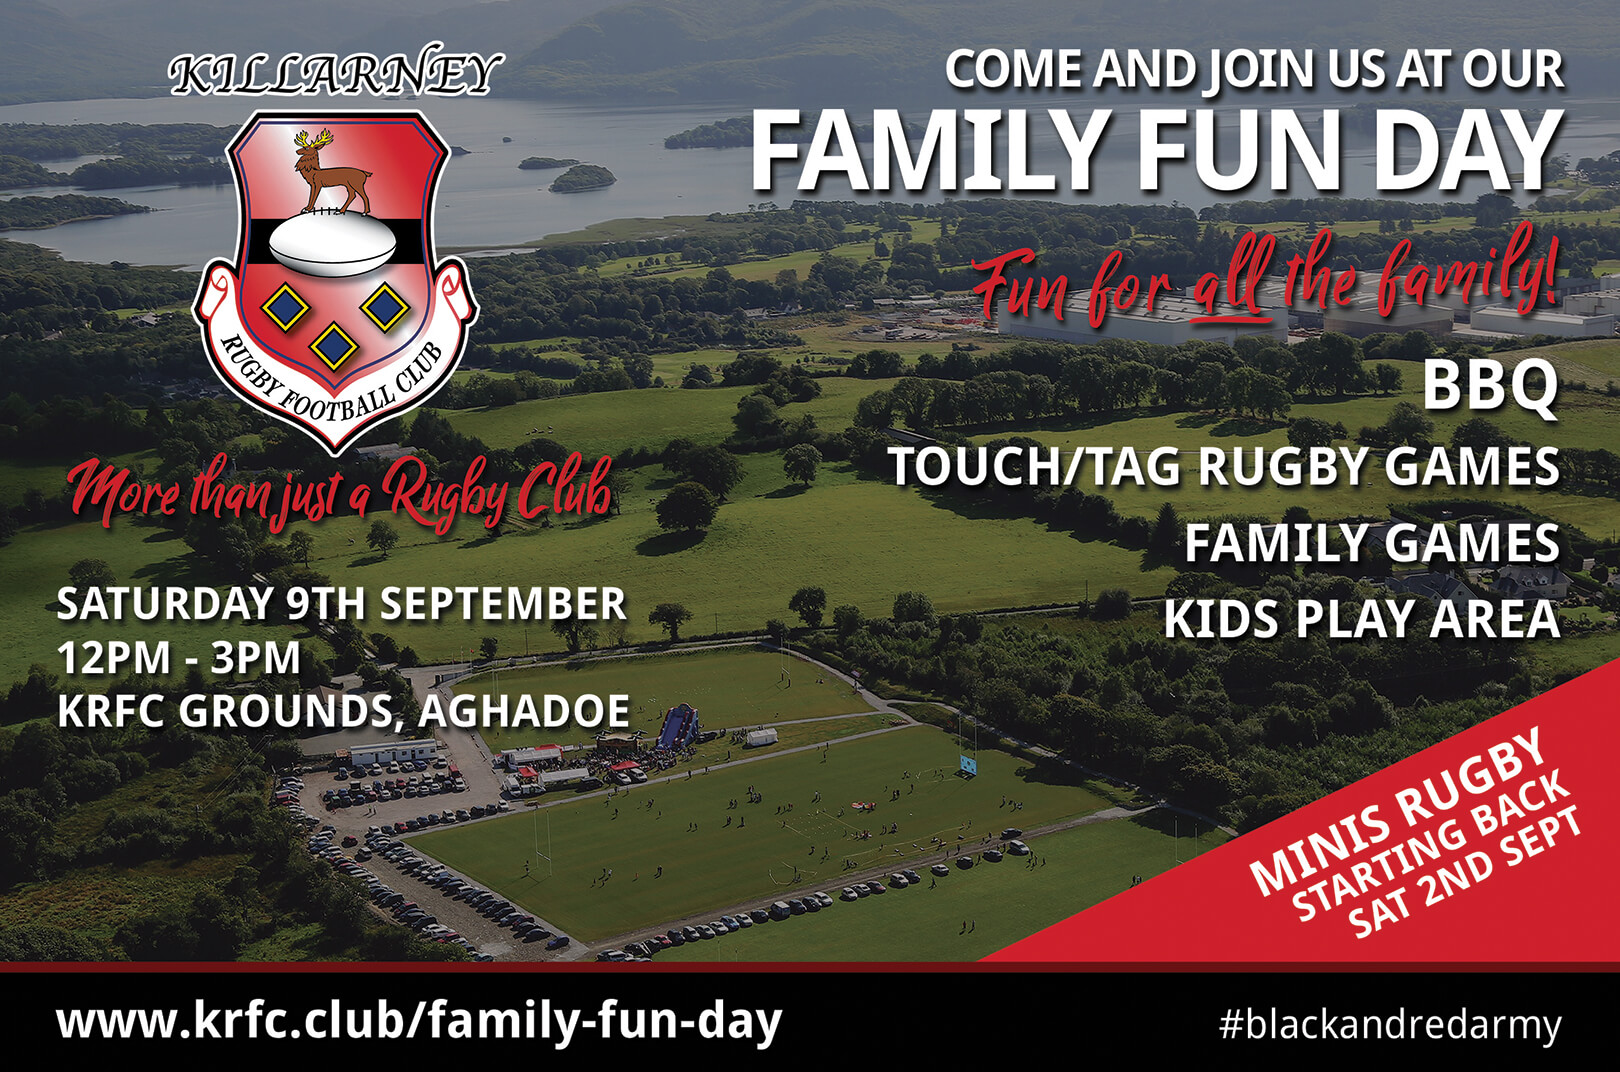 KRFC Family Fun Day - Saturday 9th September 12-3pm